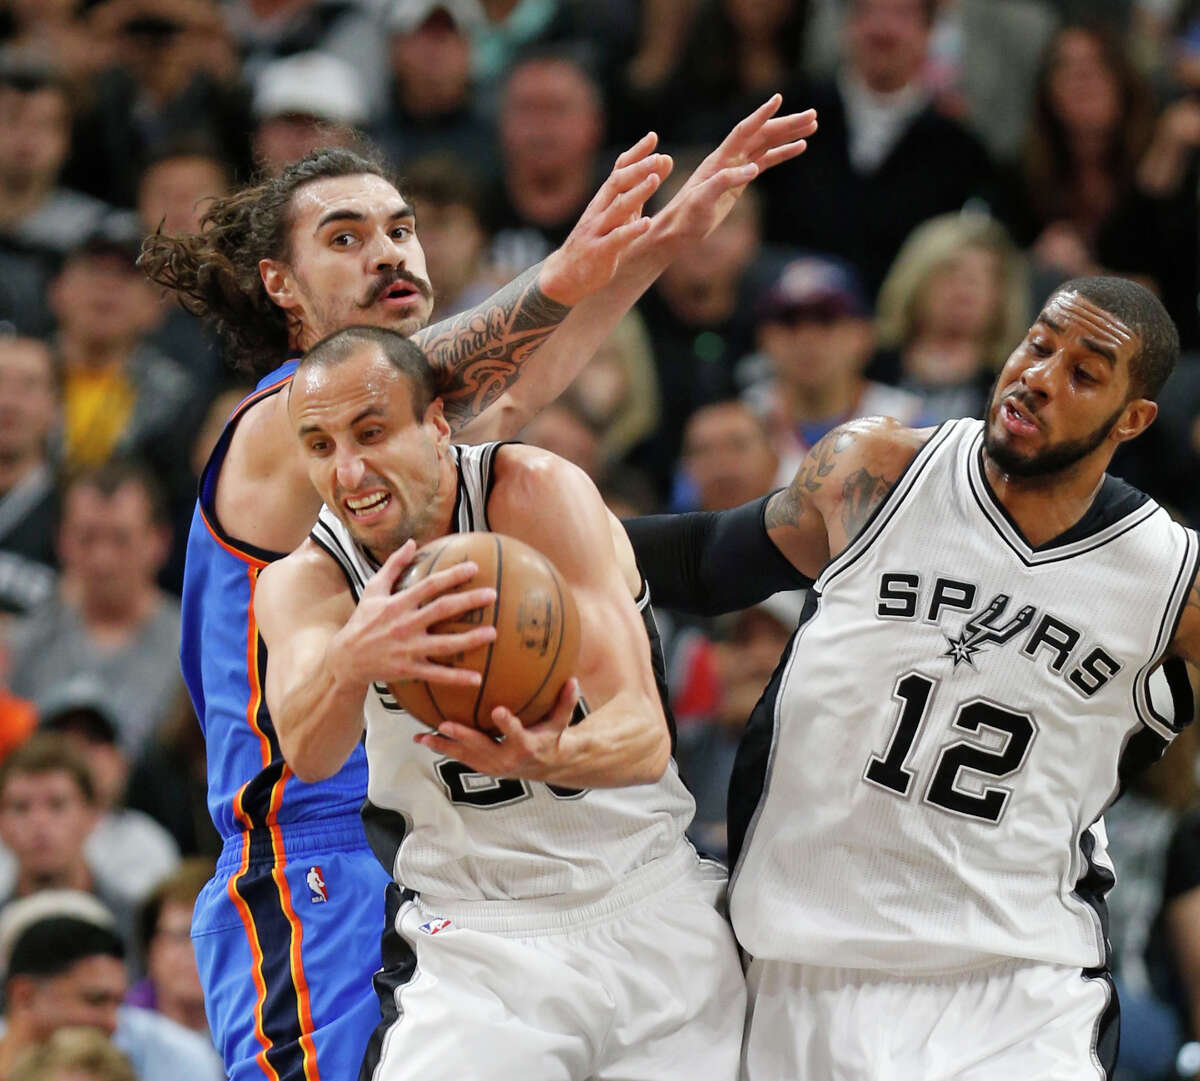 SAN ANTONIO,TX - MAY 2: Manu Ginobili #20 of the San Antonio Spurs grabs a rebound in front of Steven Adams #12 of the Oklahoma City Thunder during game Two of the Western Conference Semifinals for the 2016 NBA Playoffs at AT&T Center on May 2, 2016 in San Antonio, Texas. NOTE TO USER: User expressly acknowledges and agrees that , by downloading and or using this photograph, User is consenting to the terms and conditions of the Getty Images License Agreement. (Photo by Ronald Cortes/Getty Images)